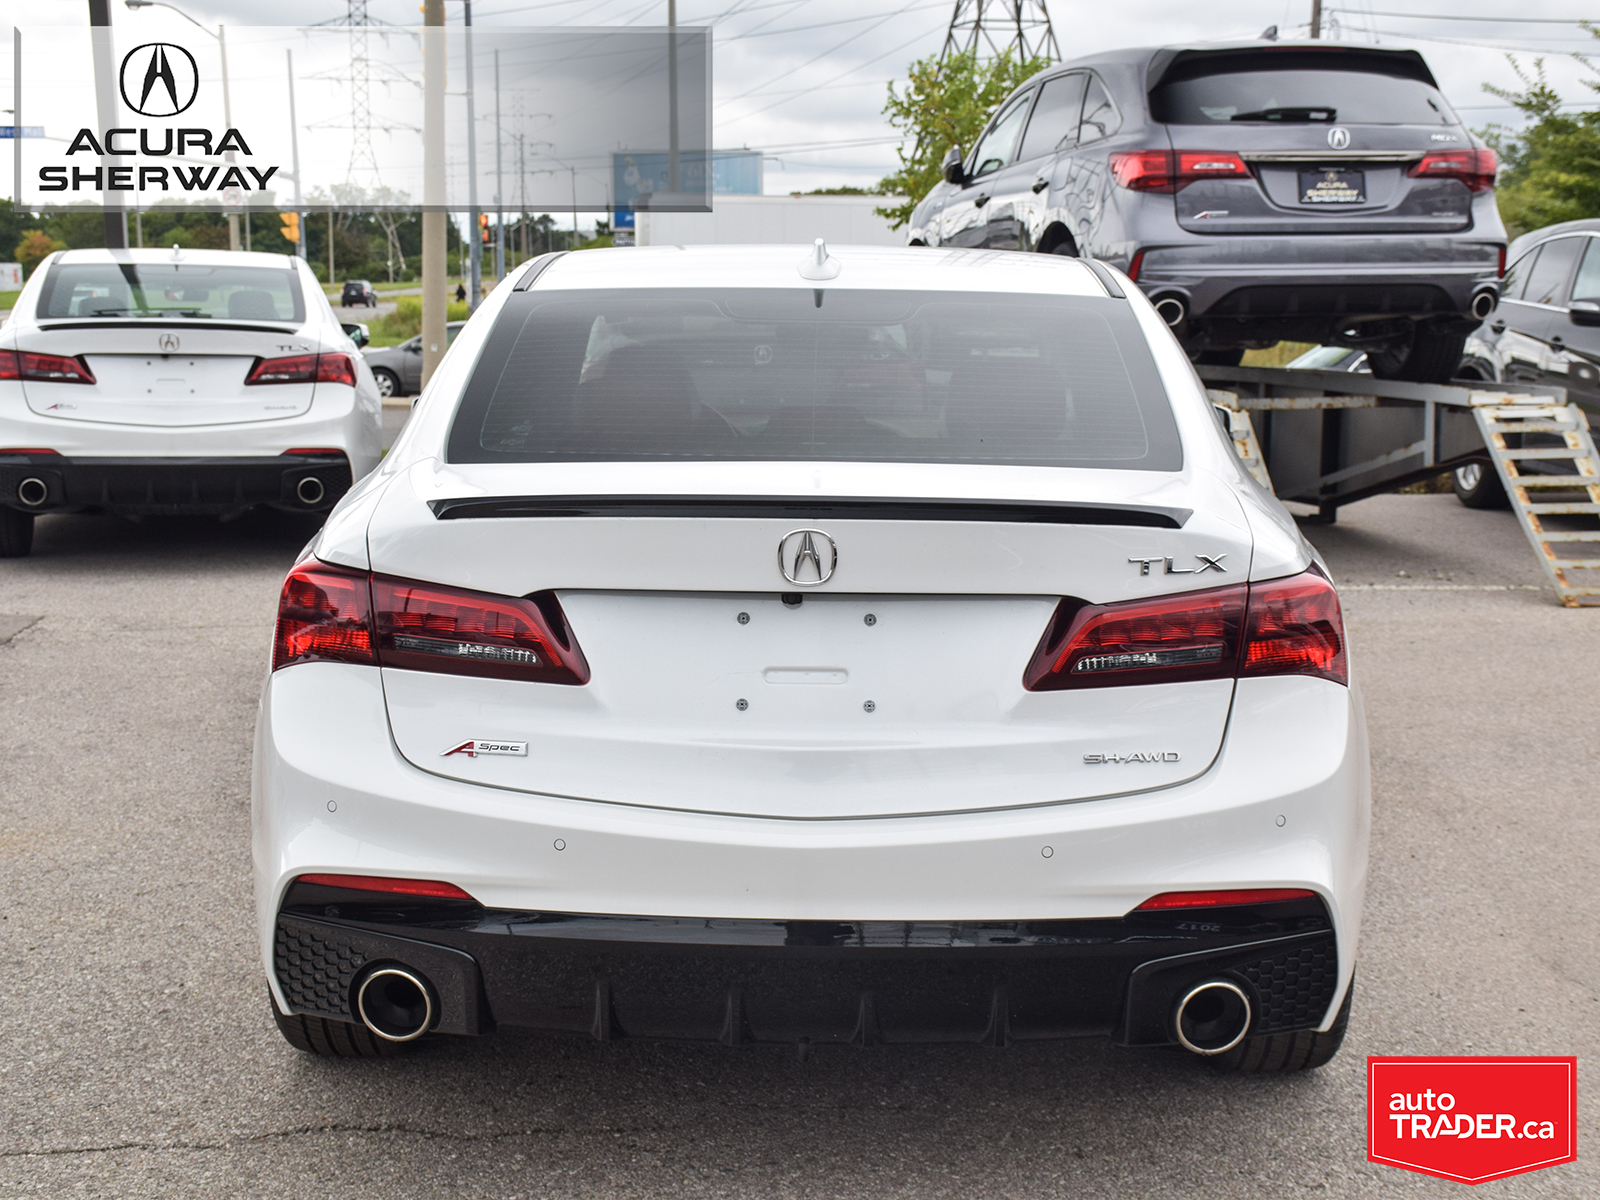 Pre-Owned 2019 Acura TLX 3.5L SH-AWD w/Elite Pkg A-Spec Red